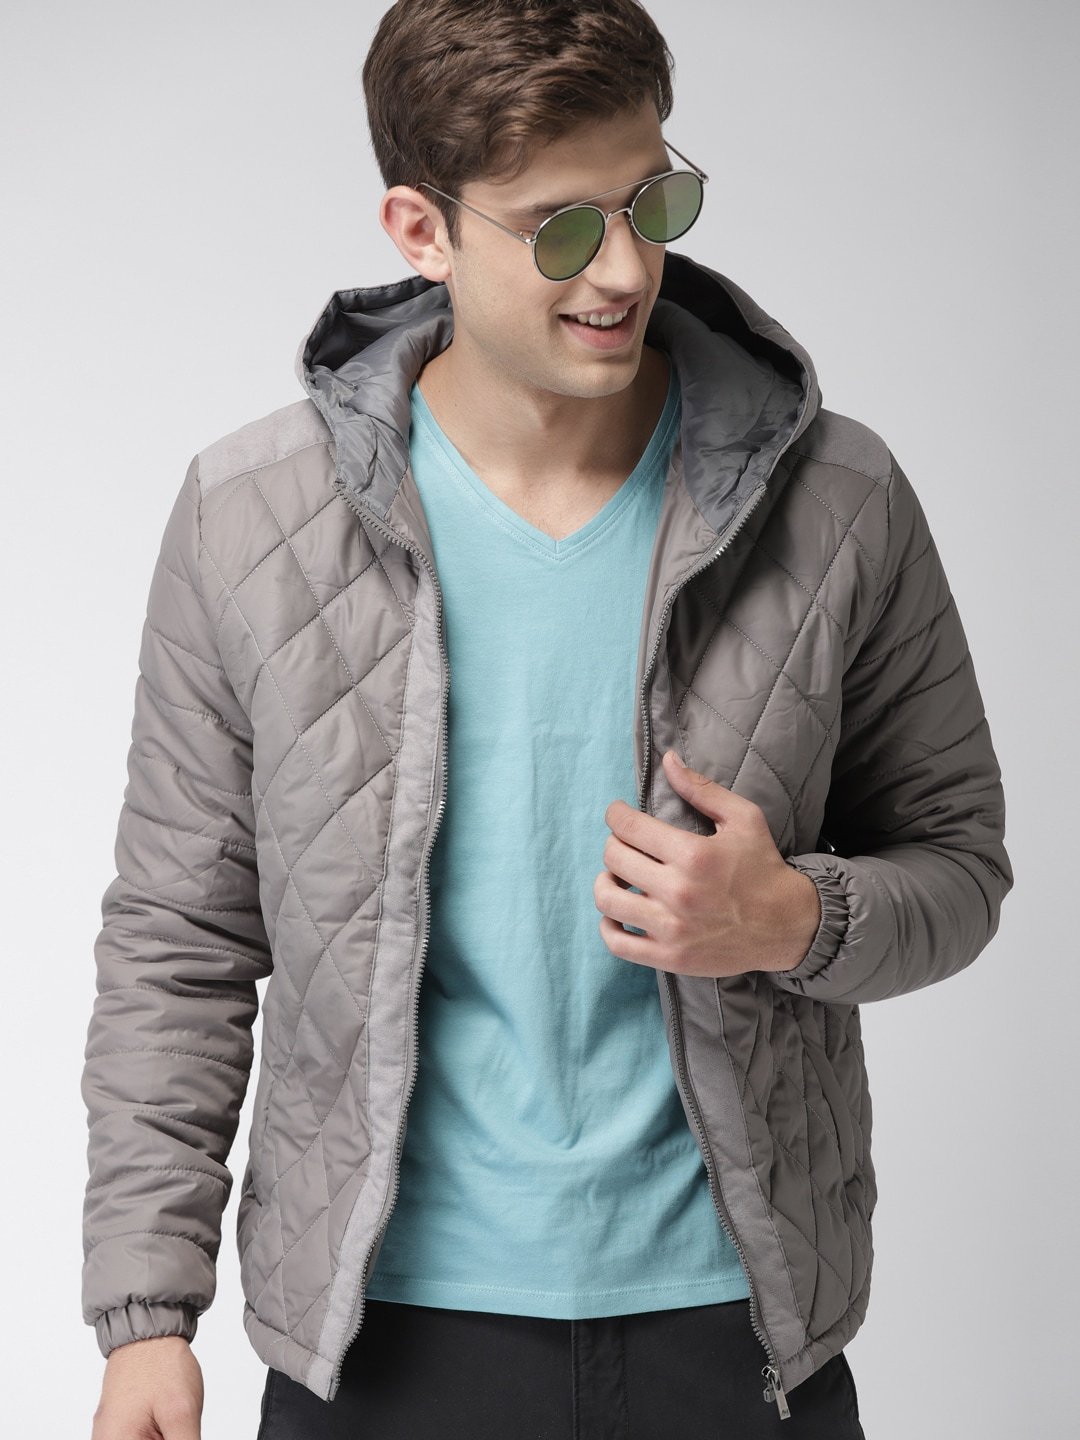 02c37cb4 Mast & Harbour Jacket Jackets - Buy Mast & Harbour Jacket Jackets online in  India